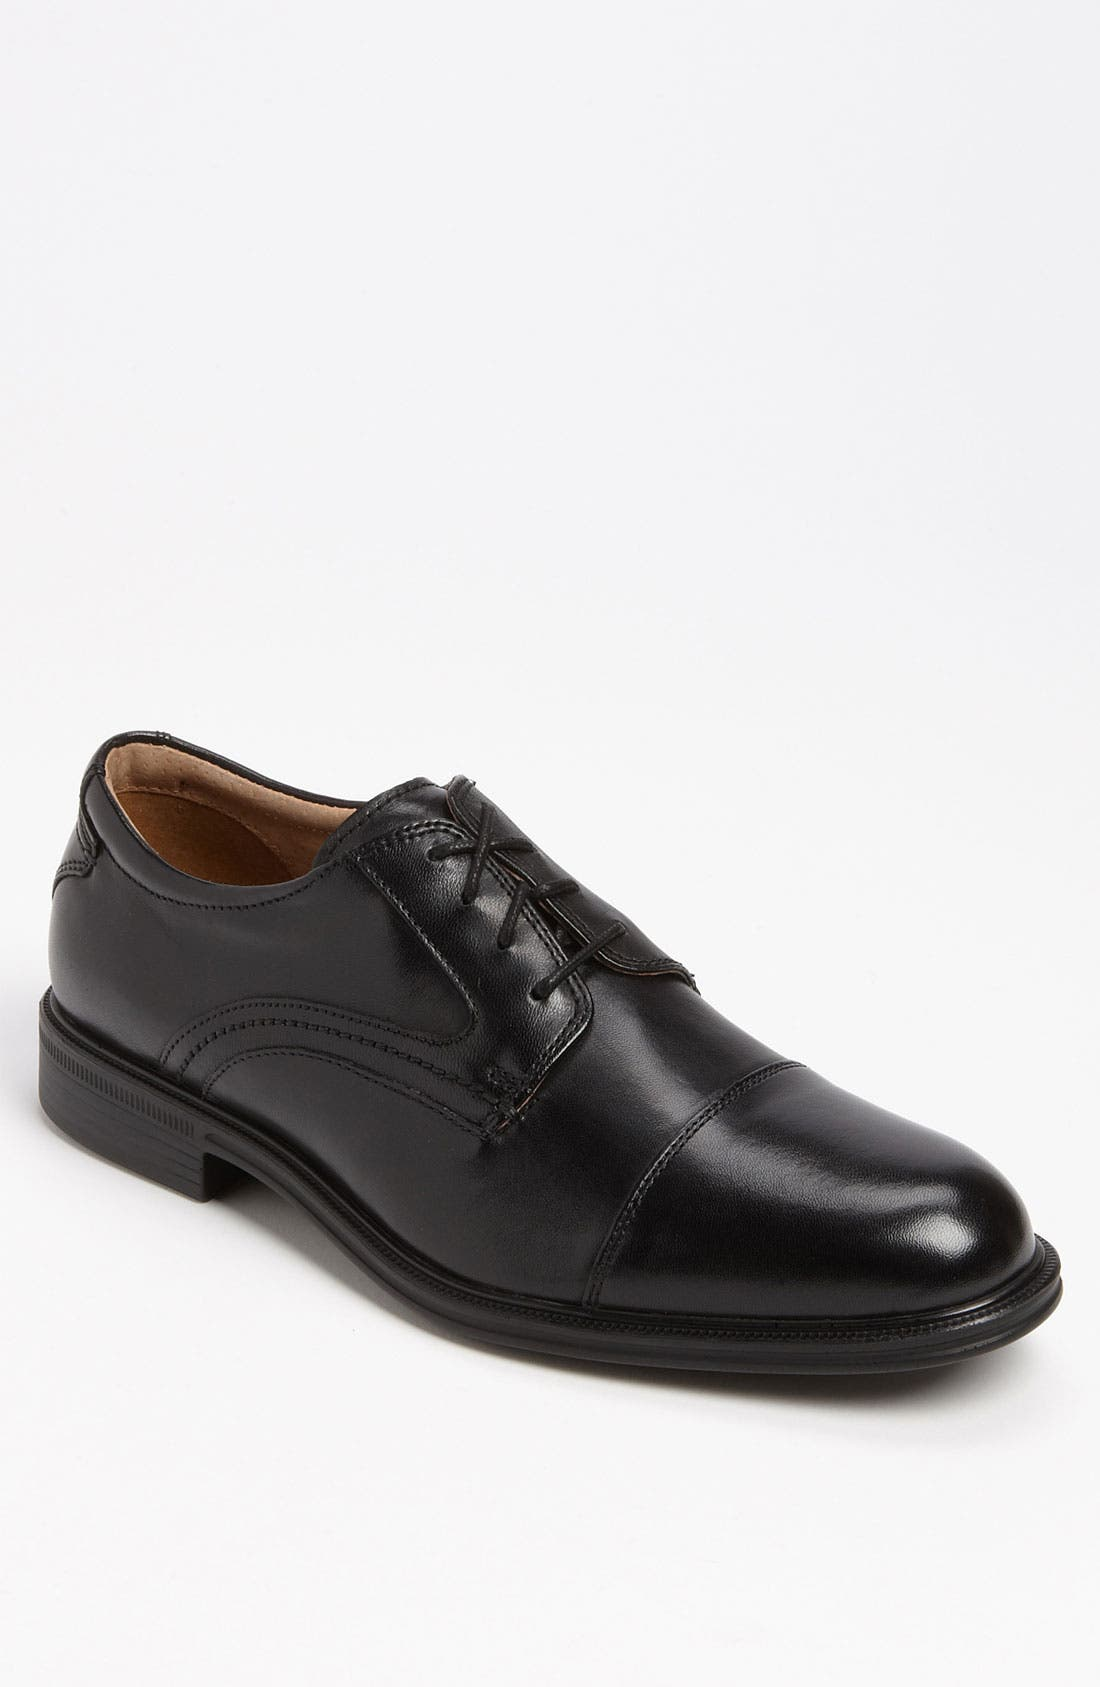 Alternate Image 1 Selected - Florsheim 'Network' Cap Toe Derby (Online Only)